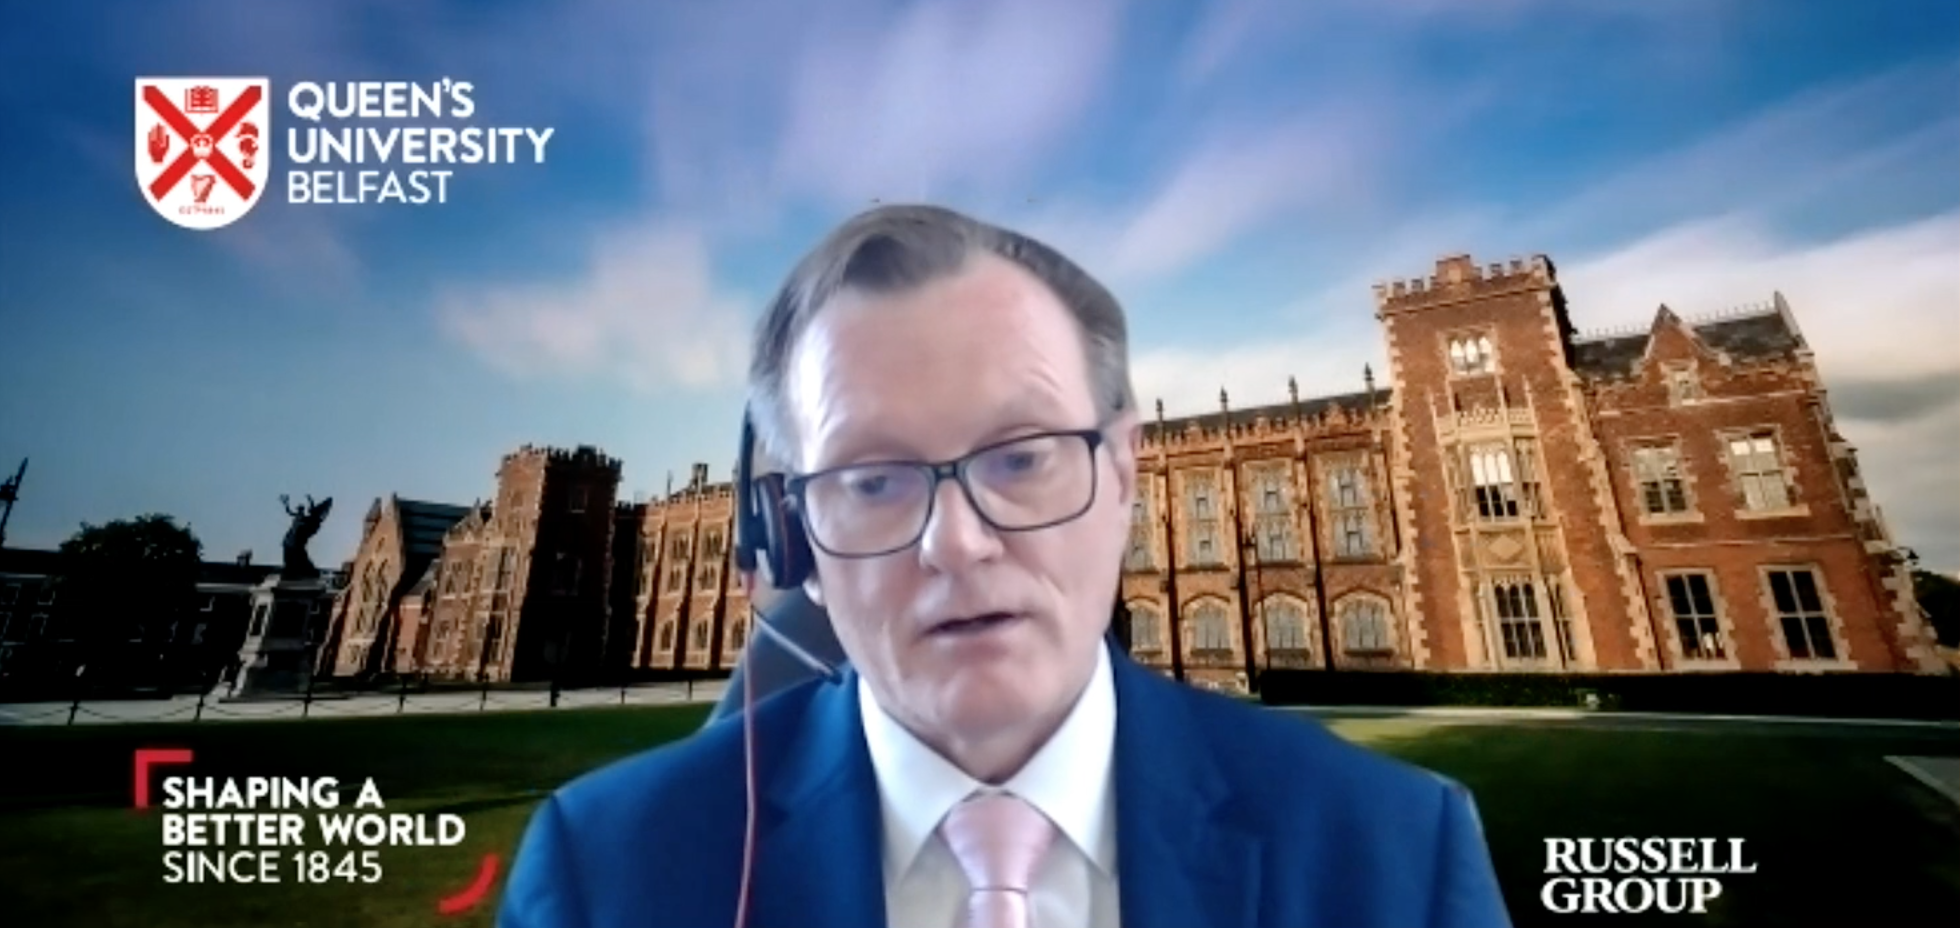 DISCUSSIONS STARTED WITH POLITICAL LEADERS ON NORTH-SOUTH EDUCATION LINKS: QUB Vice-Chancellor Ian Greer addressing the virtual Homecoming from his Queen\'s office